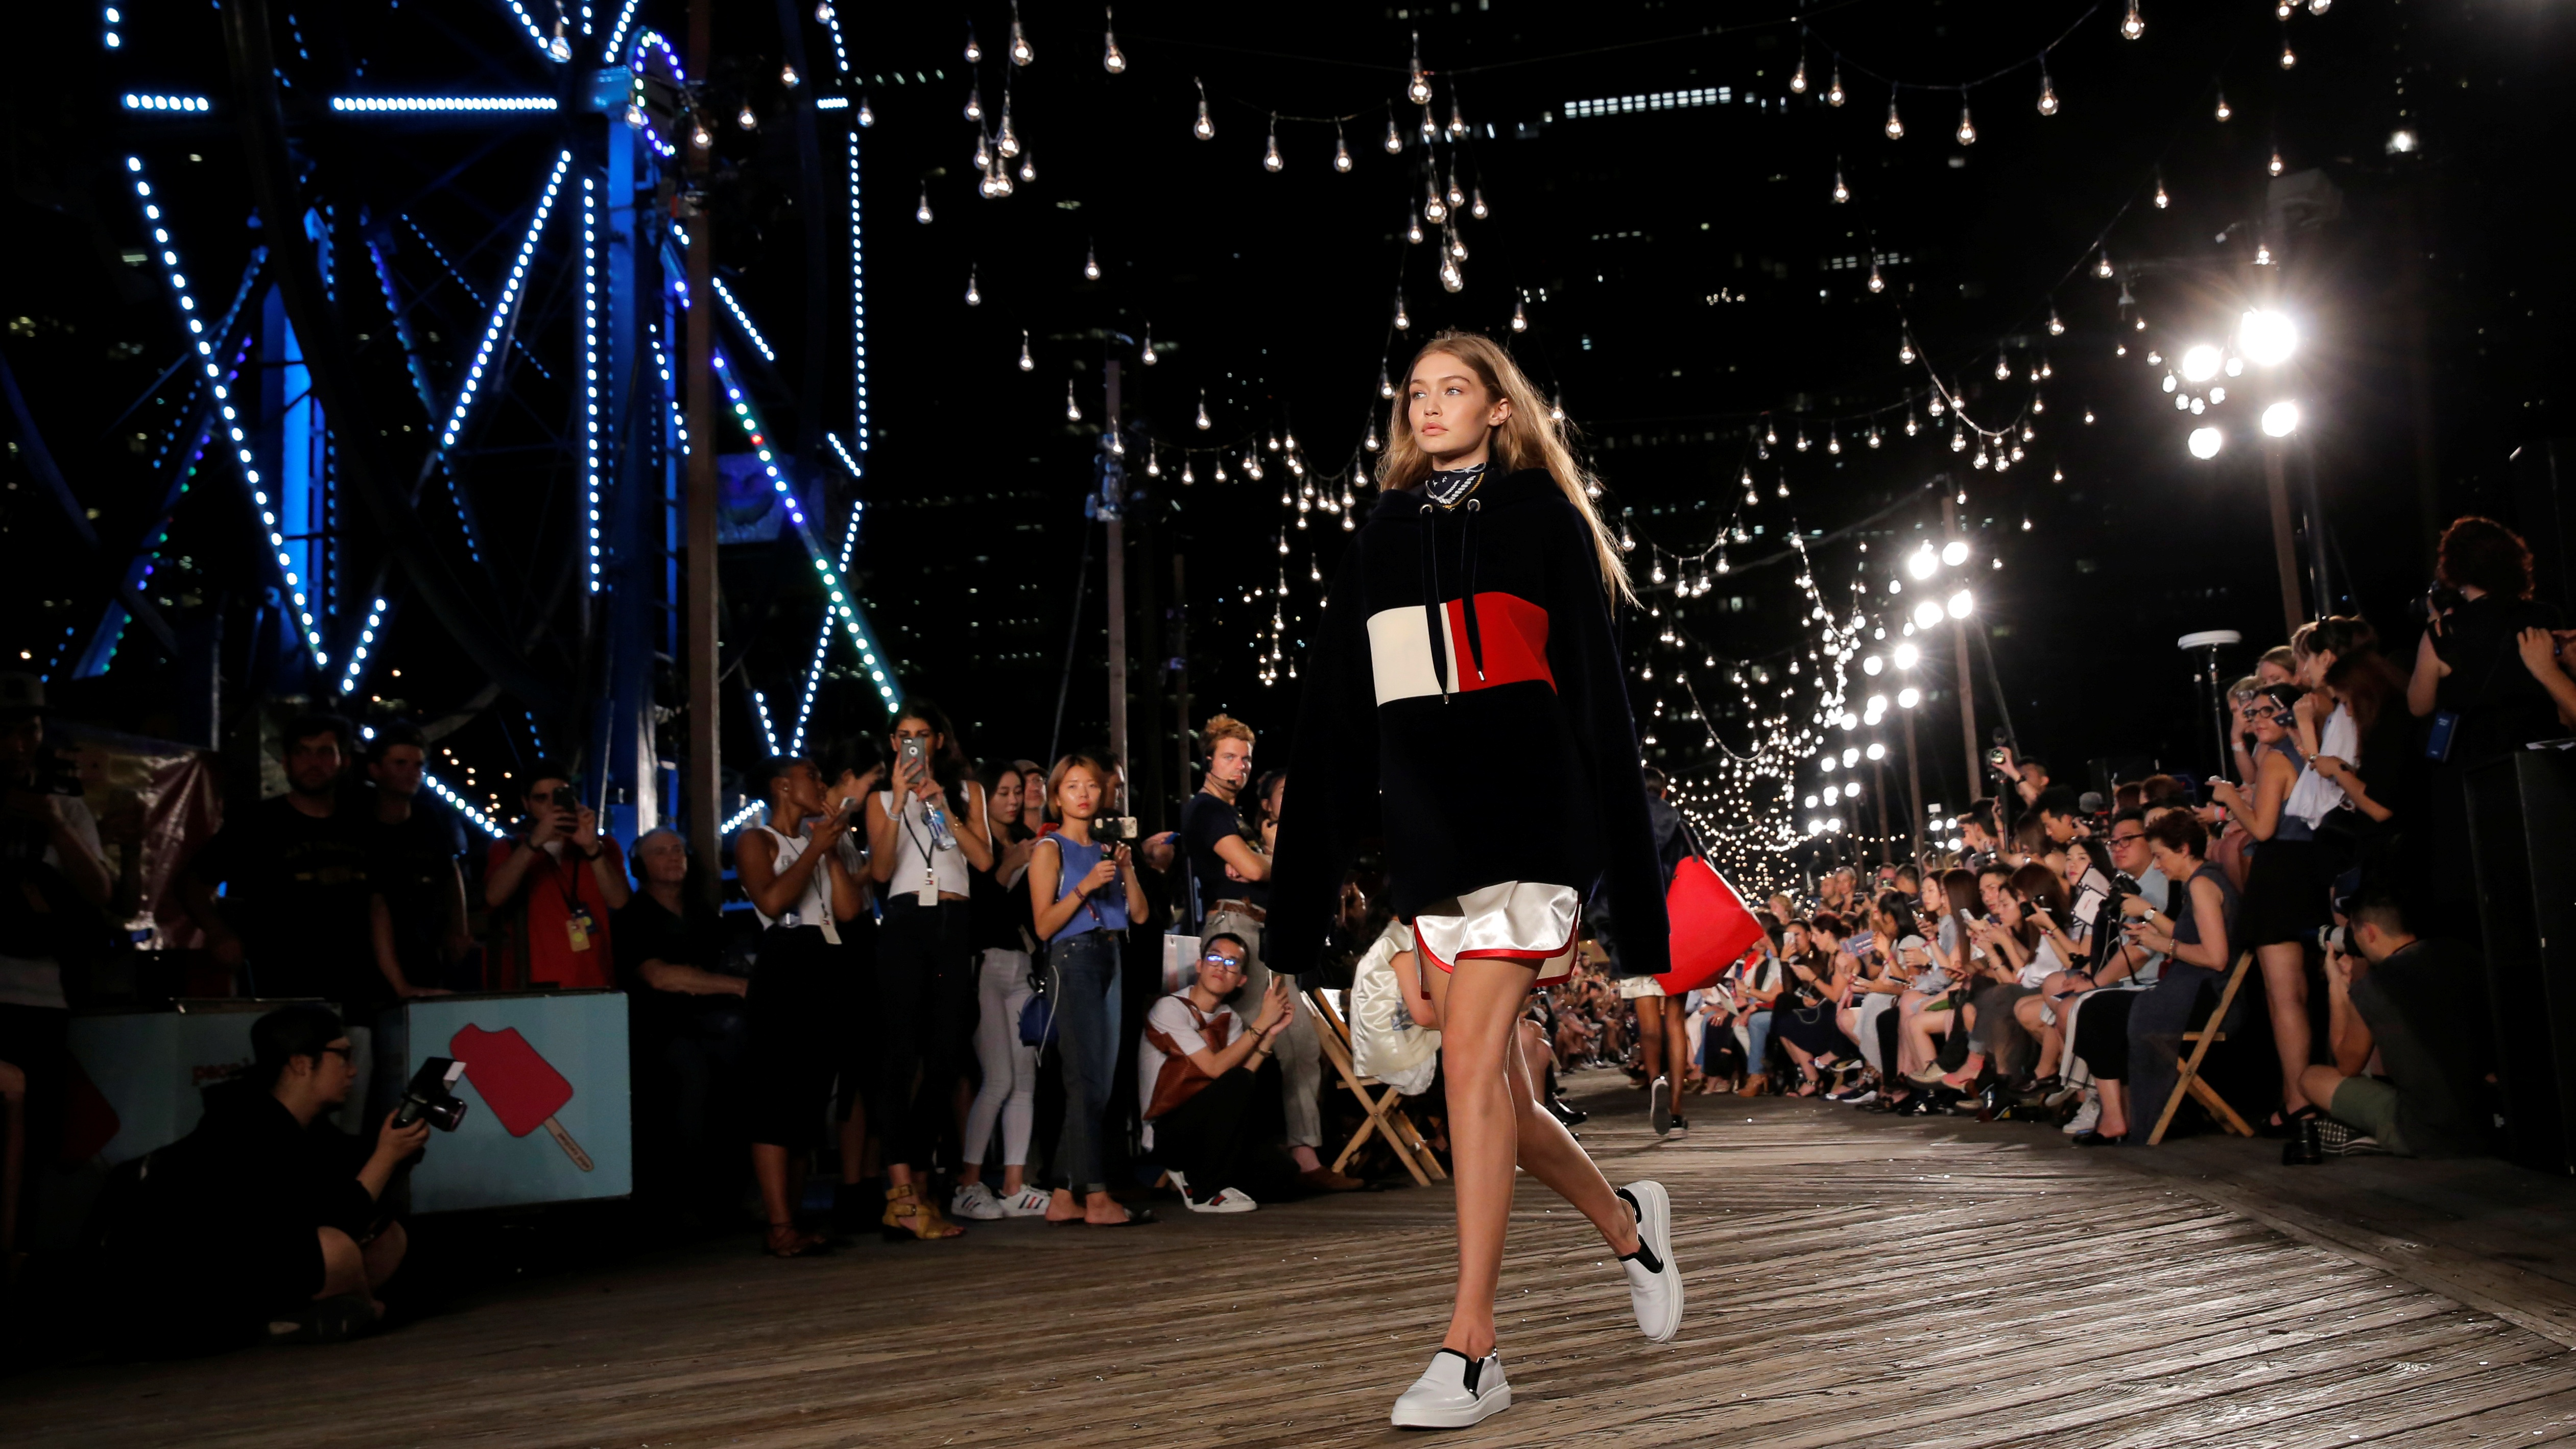 Model Gigi Hadid presents a creation from Tommy Hilfiger's Spring/Summer 2017 collection at New York Fashion Week in Manhattan, New York, U.S., September 9, 2016. REUTERS/Andrew Kelly